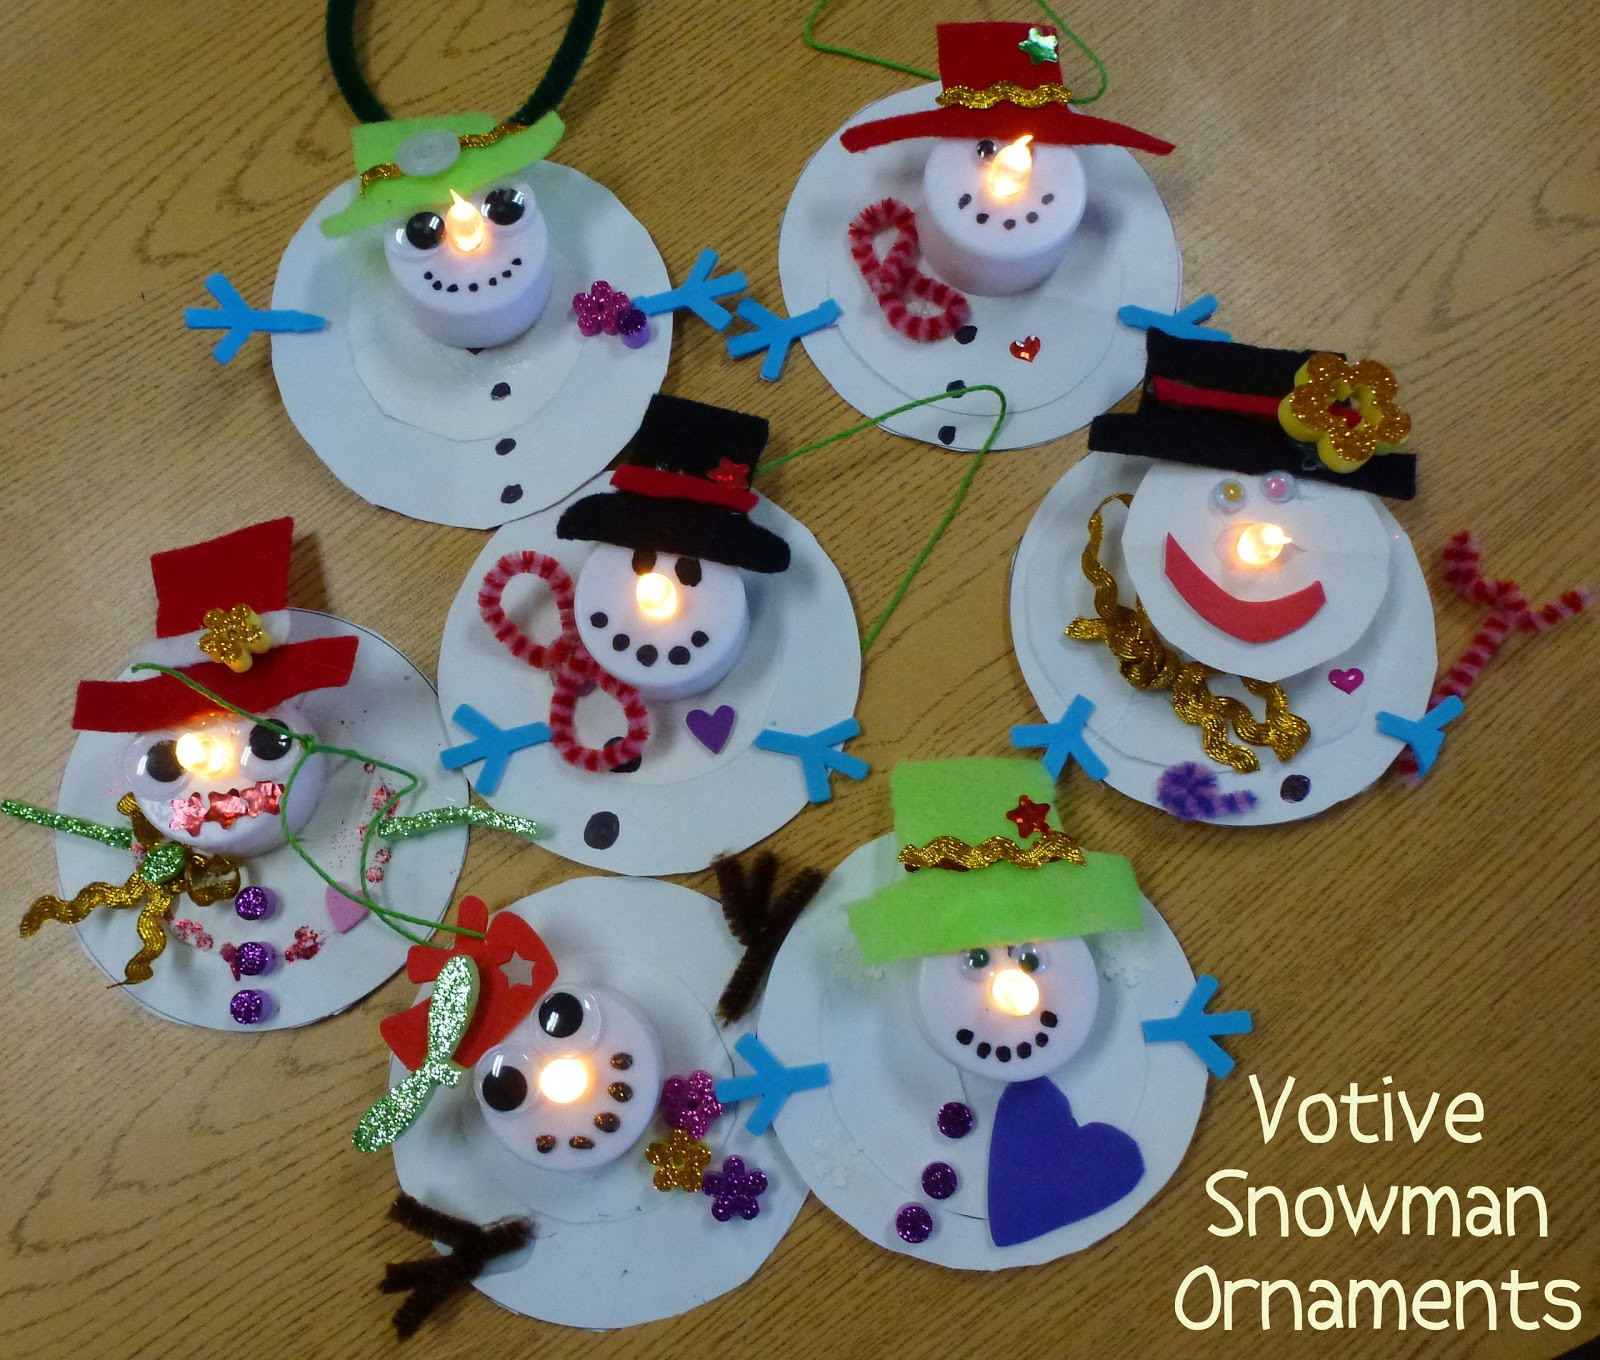 Best ideas about Christmas Ornaments Craft Ideas For Kids . Save or Pin Choices for Children Votive Snowman Ornaments Now.